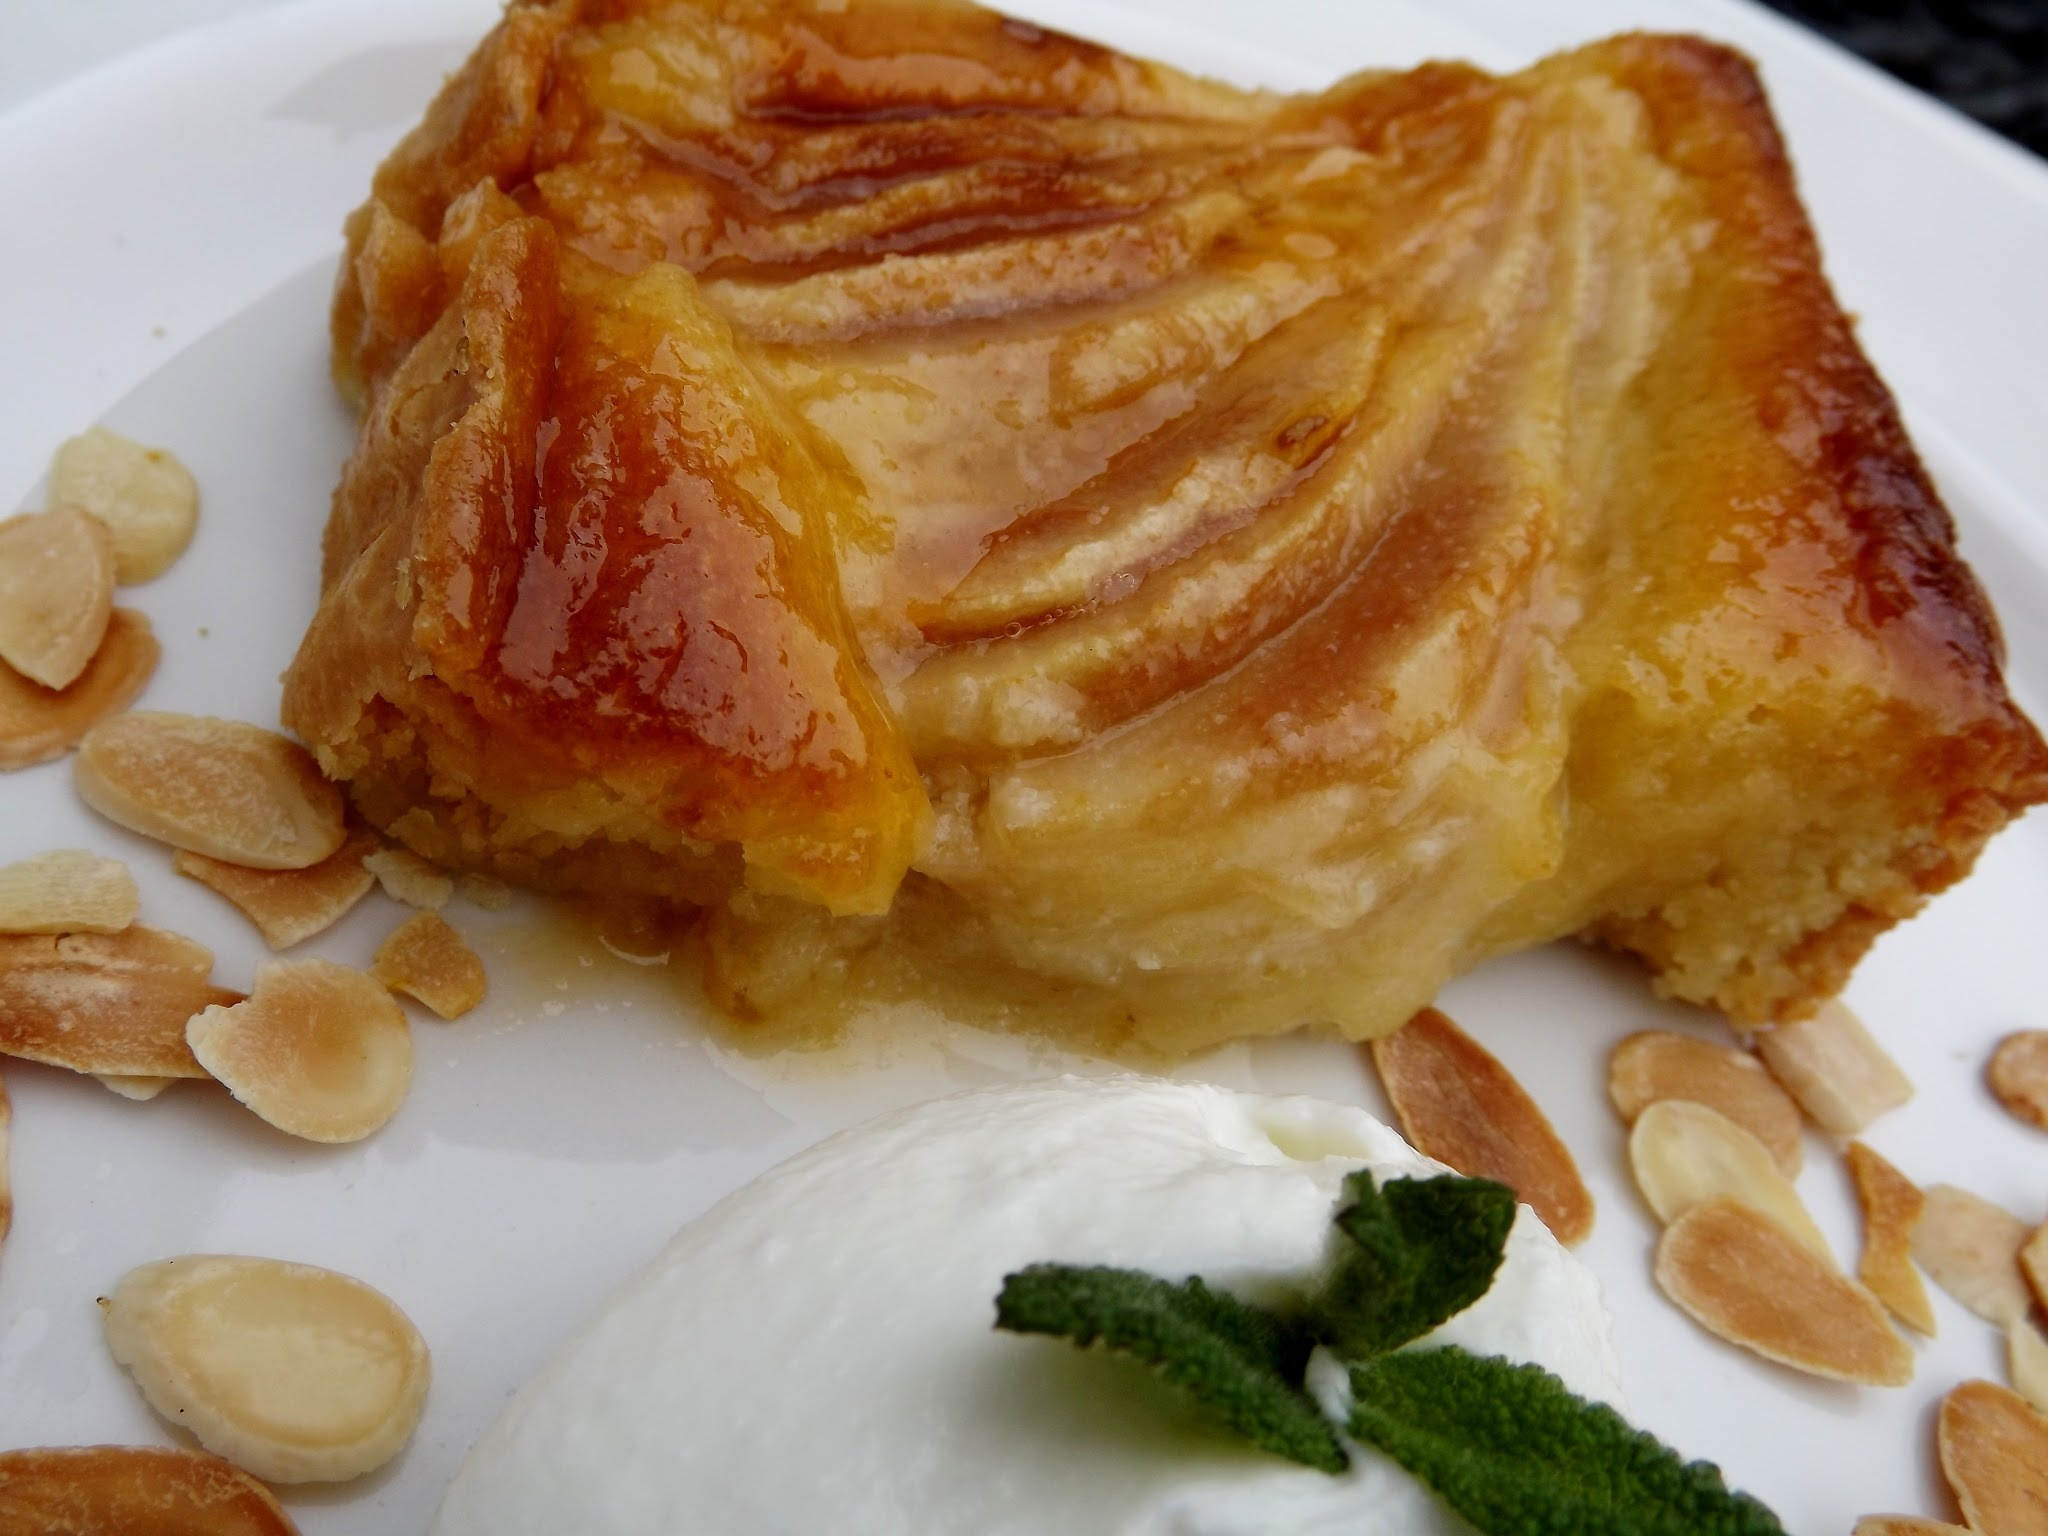 Pear & Frangipane Tart with Amaretto Whipped Cream